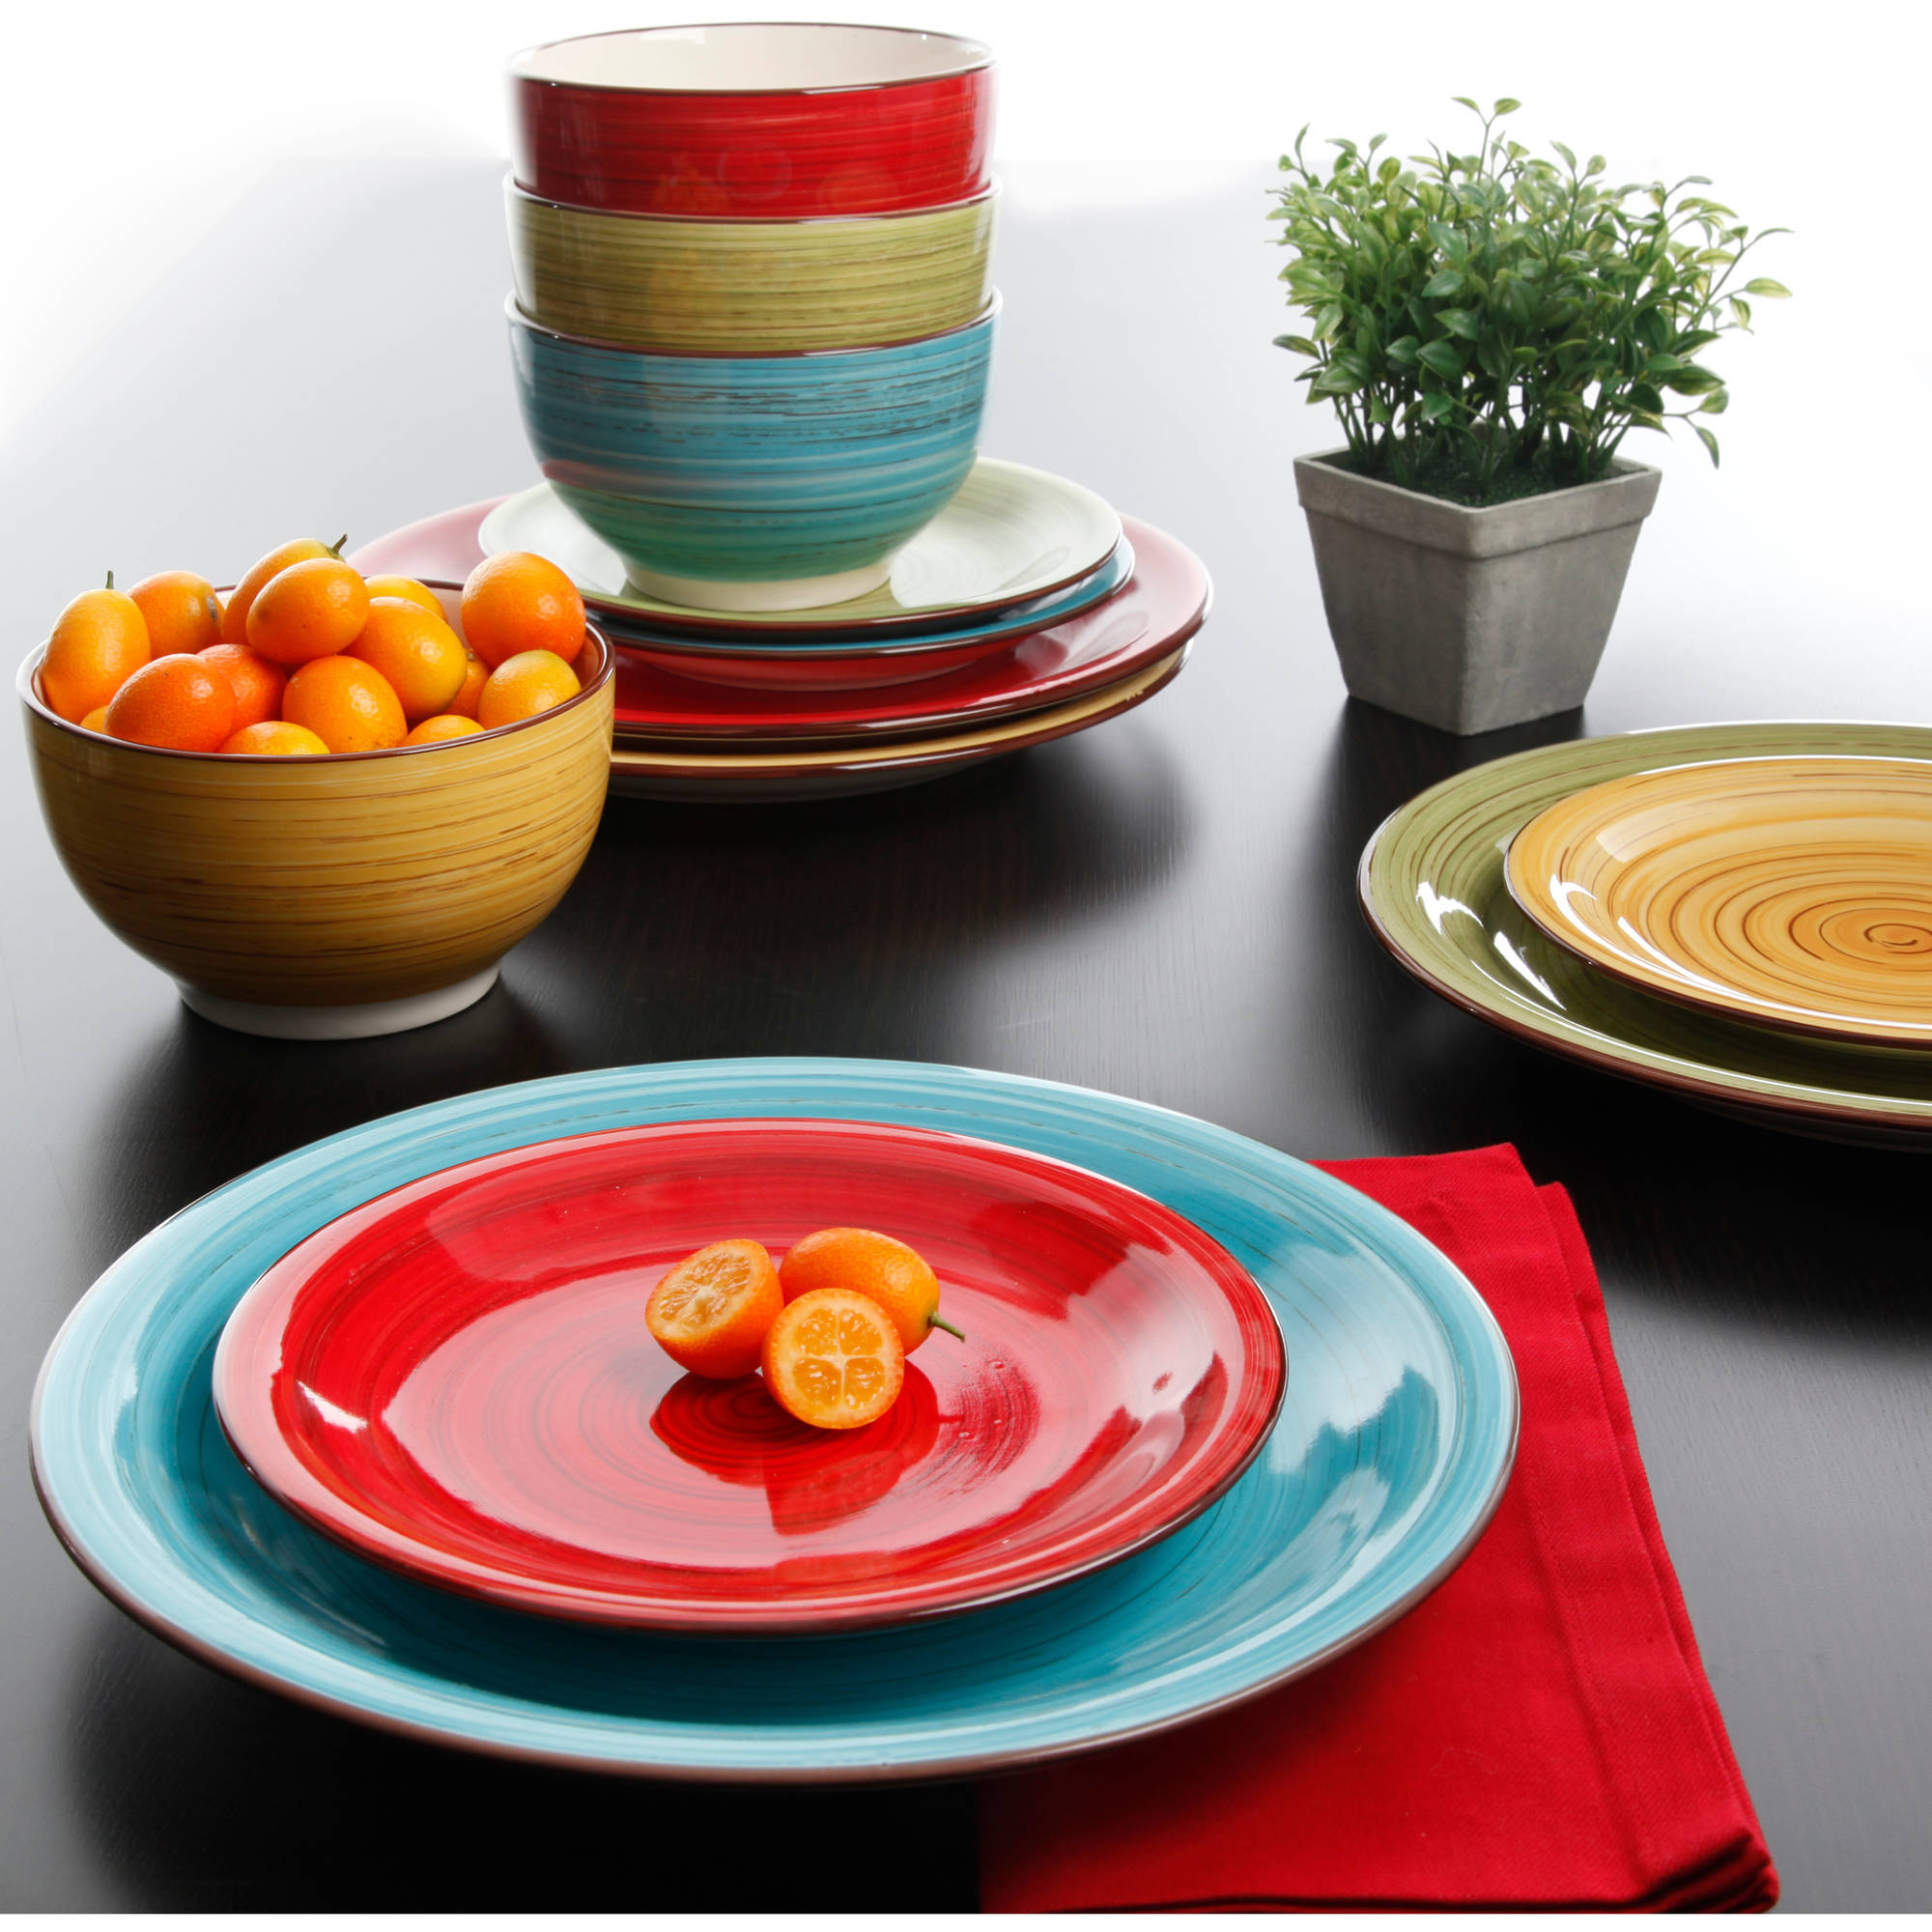 Better Homes & Gardens Festival 12-Piece Ceramic Dinnerware Set, Assorted